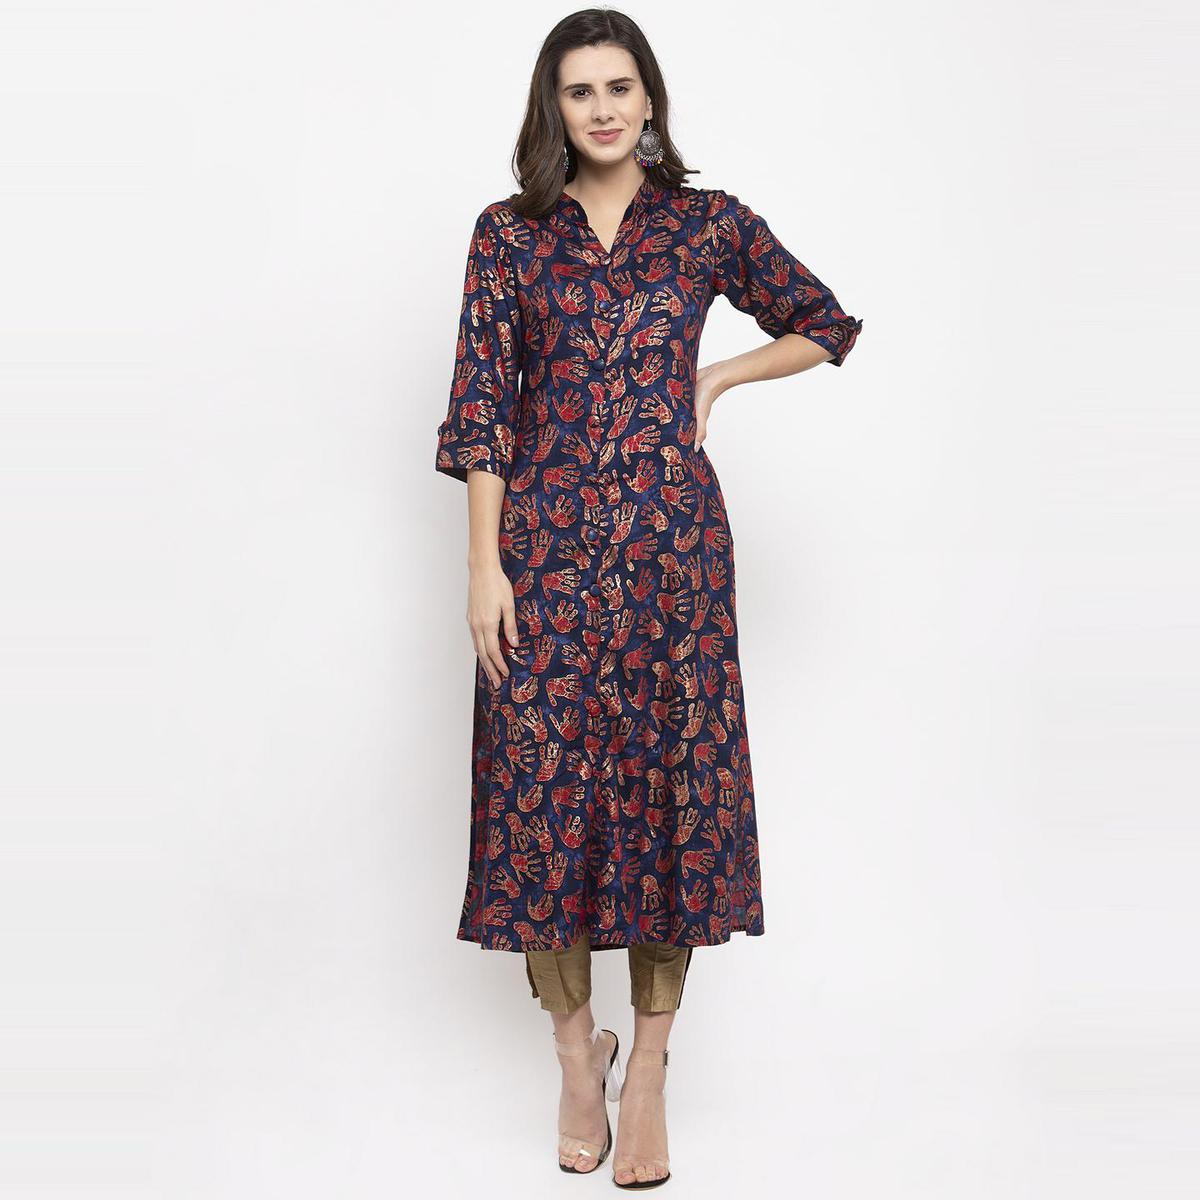 Aujjessa - Navy Blue Colored Casual Wear Abstract Foil Printed Viscose Rayon Kurti